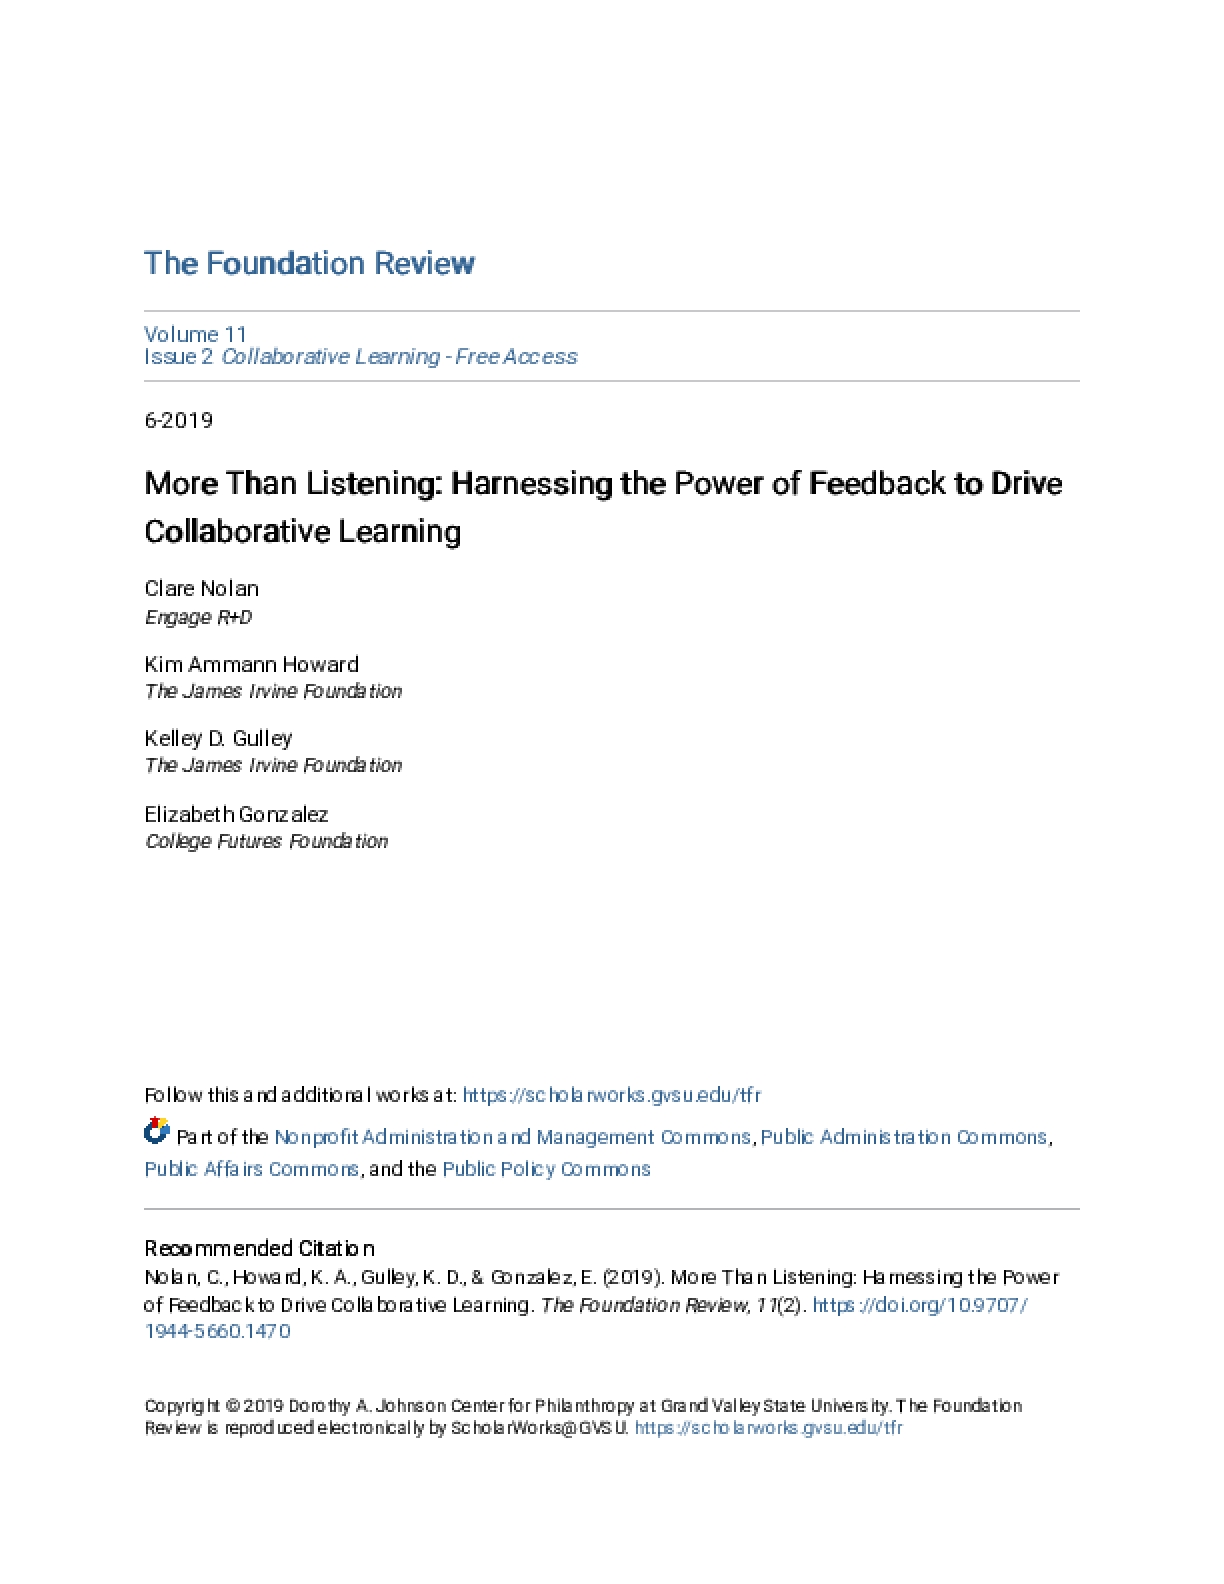 More than Listening: Harnessing the Power of Feedback to Drive Collaborative Learning